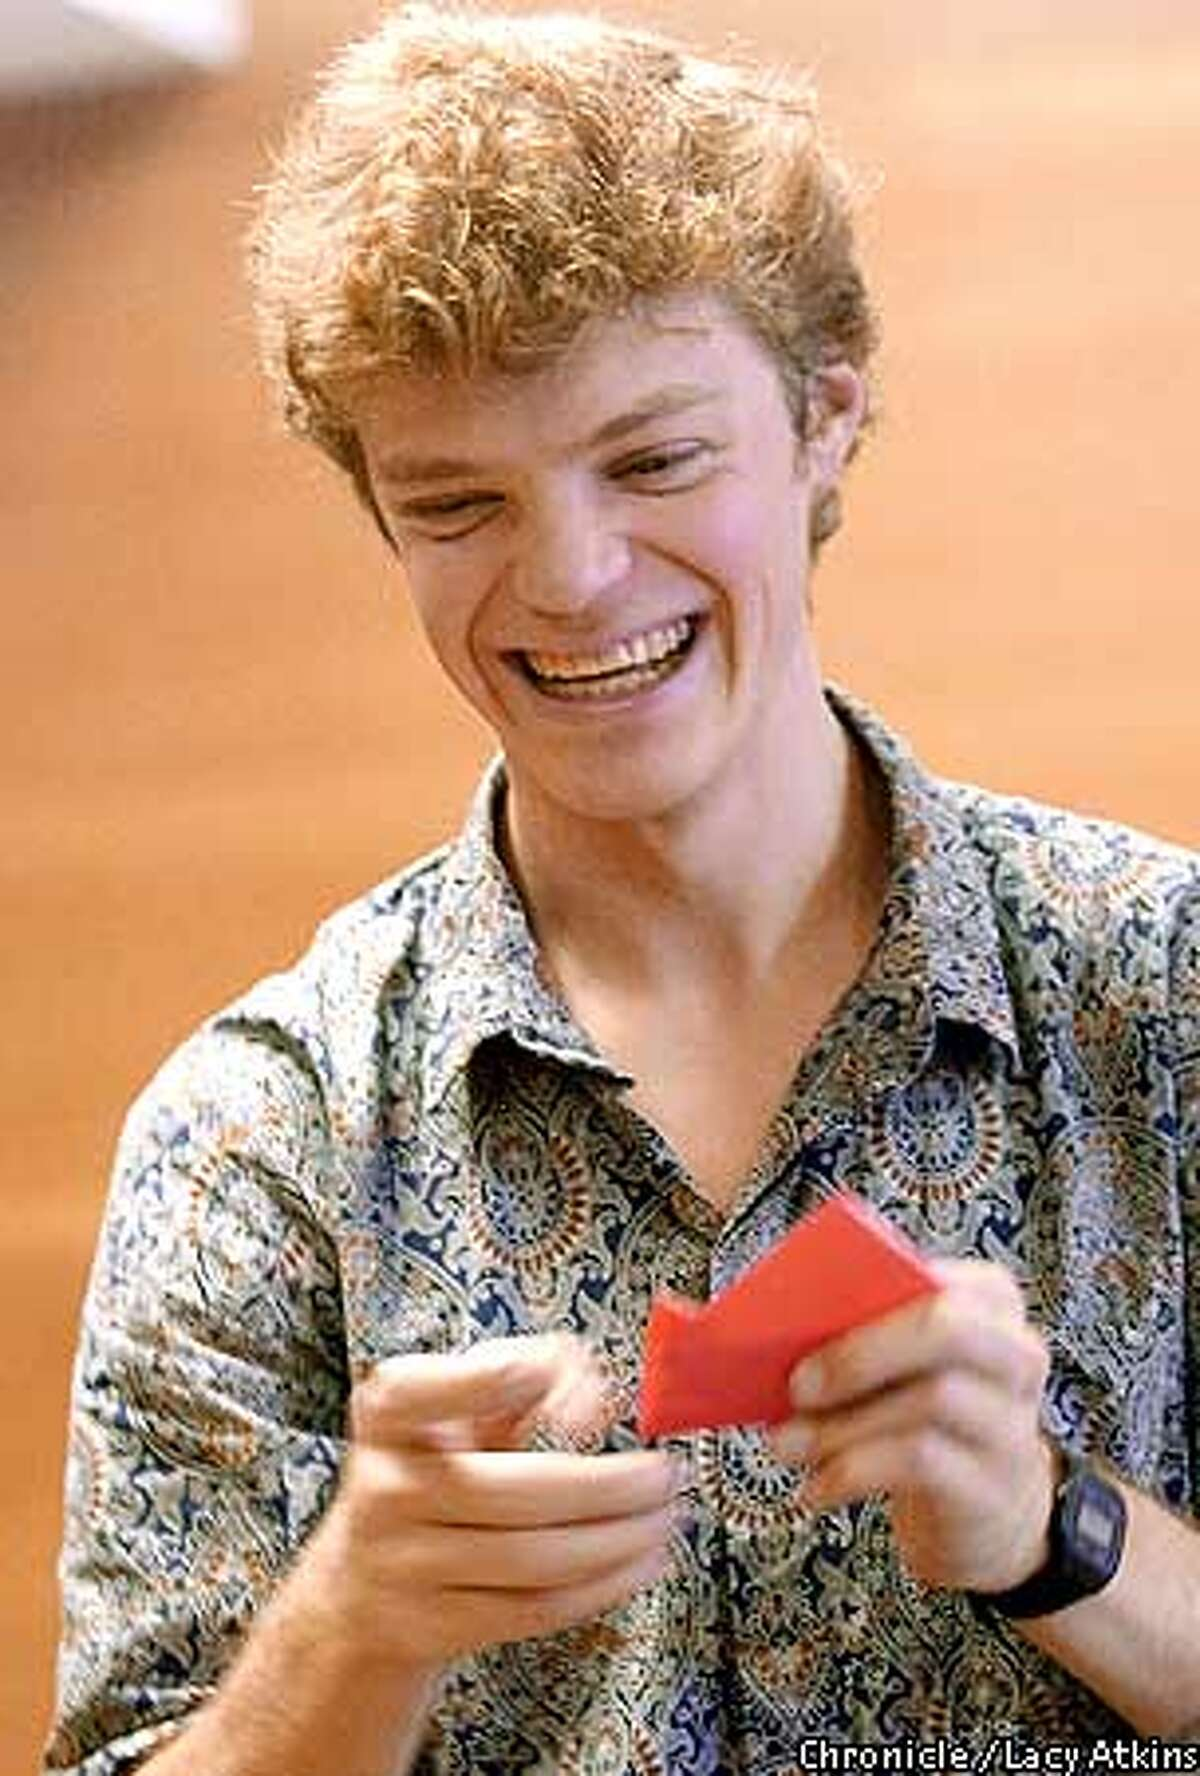 Jeremy Shafer laughs as he makes an origami broken heart at the Bay Area Rapid Folders meeting. Chronicle photo by Lacy Atkins